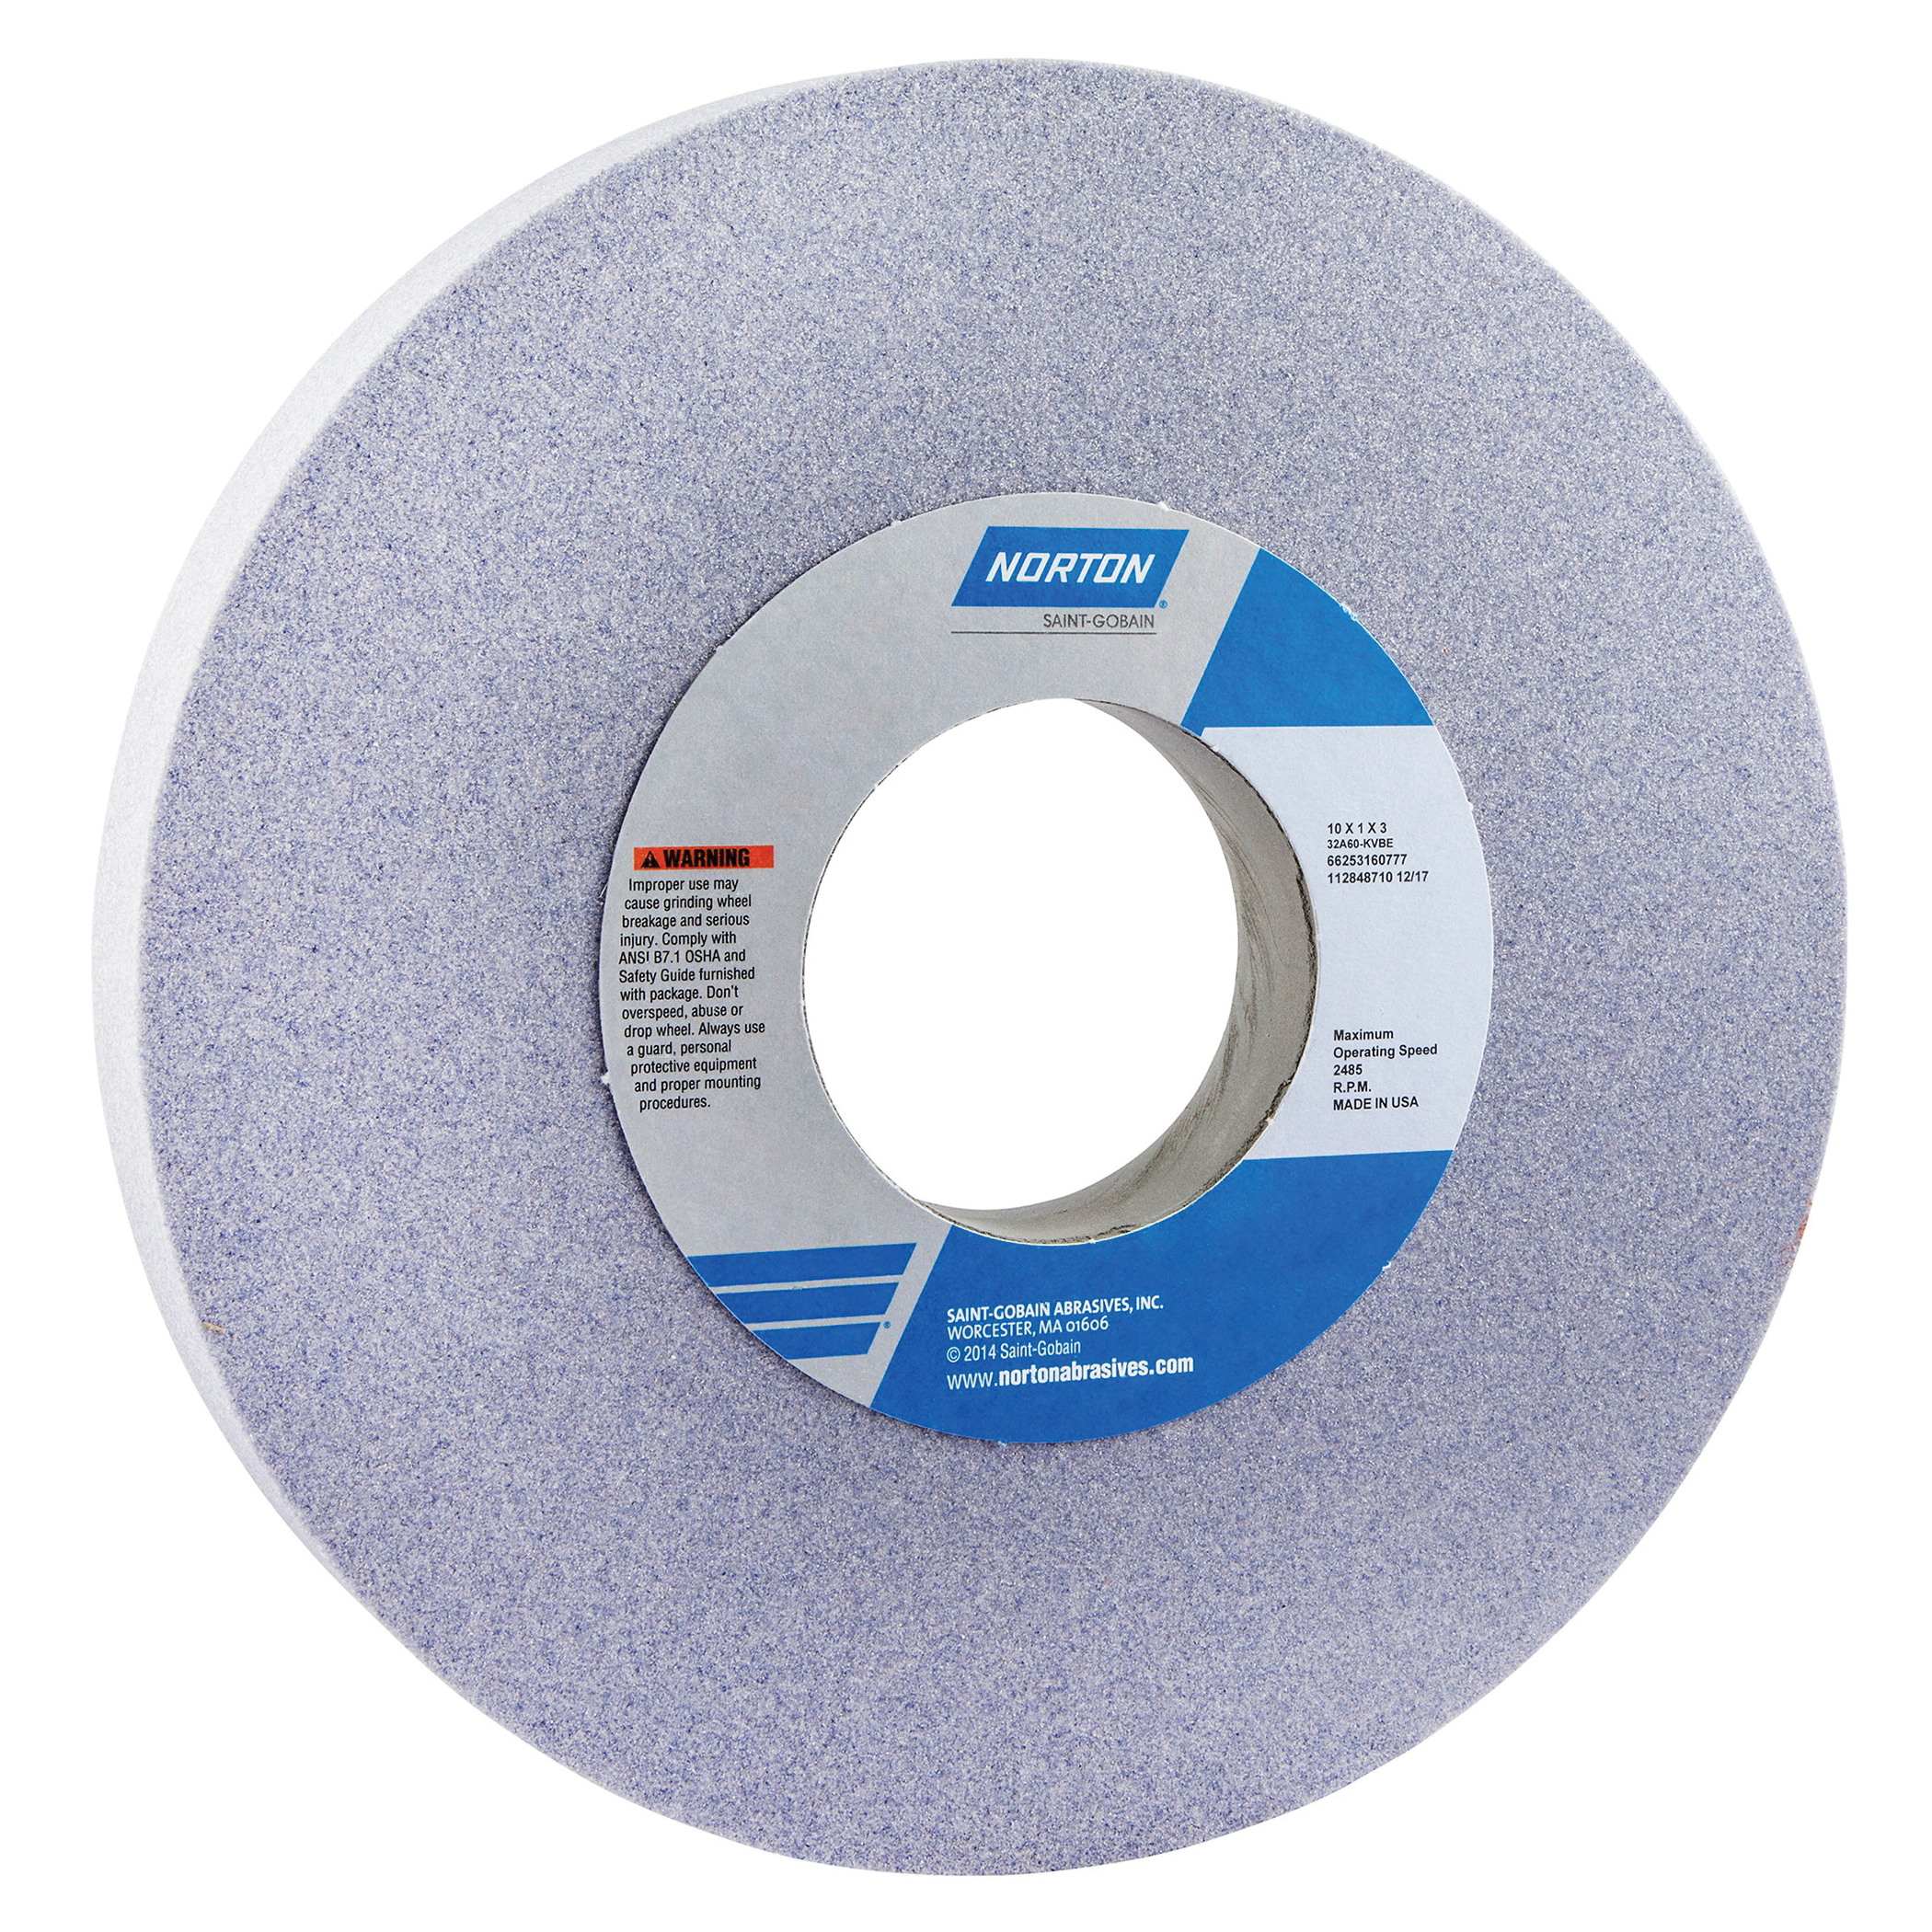 Norton® 66253160777 32A Straight Toolroom Wheel, 10 in Dia x 1 in THK, 3 in Center Hole, 60 Grit, Aluminum Oxide Abrasive